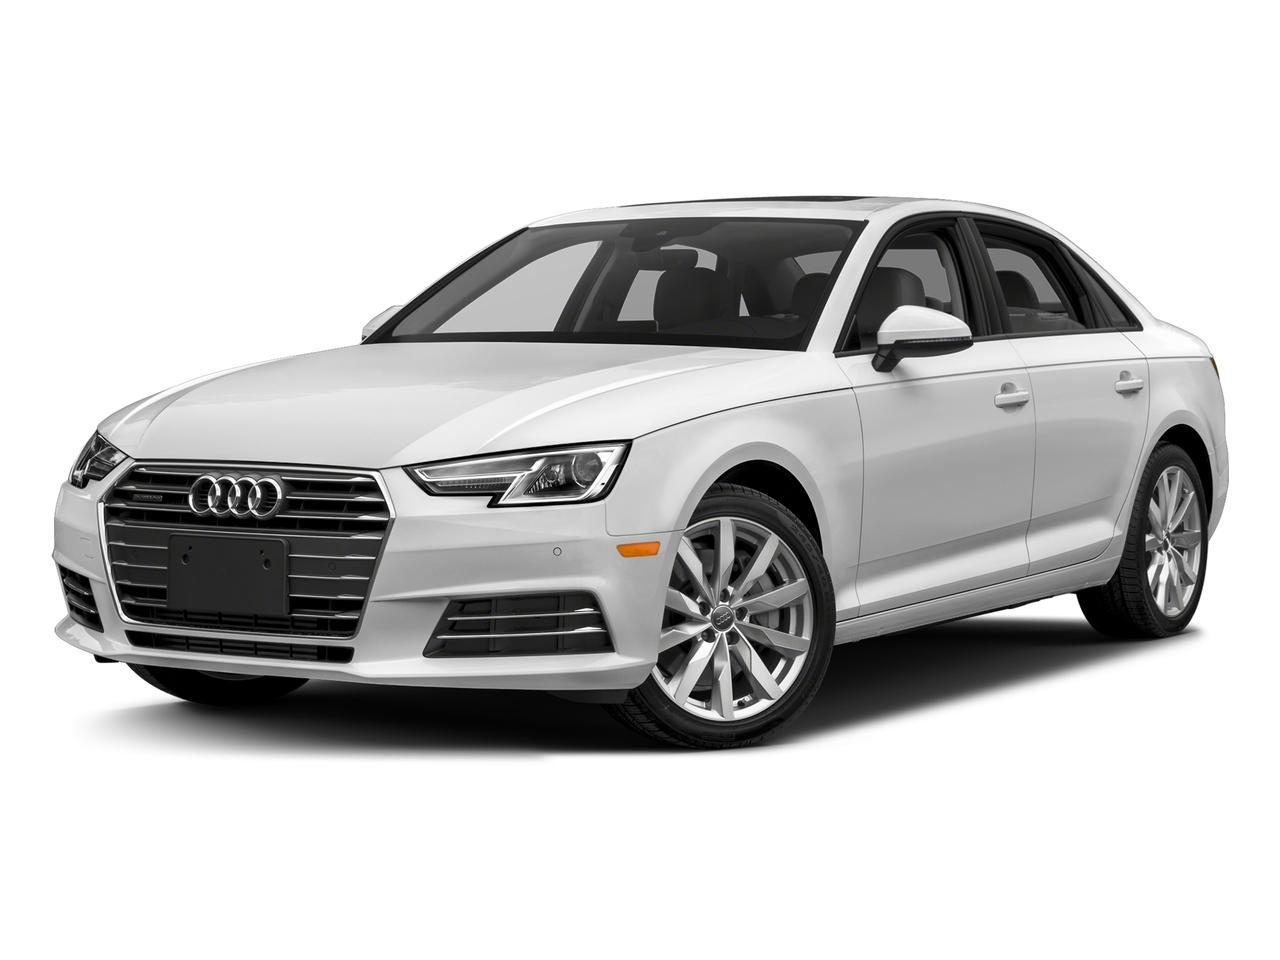 2017 Audi A4 Vehicle Photo in Danbury, CT 06810